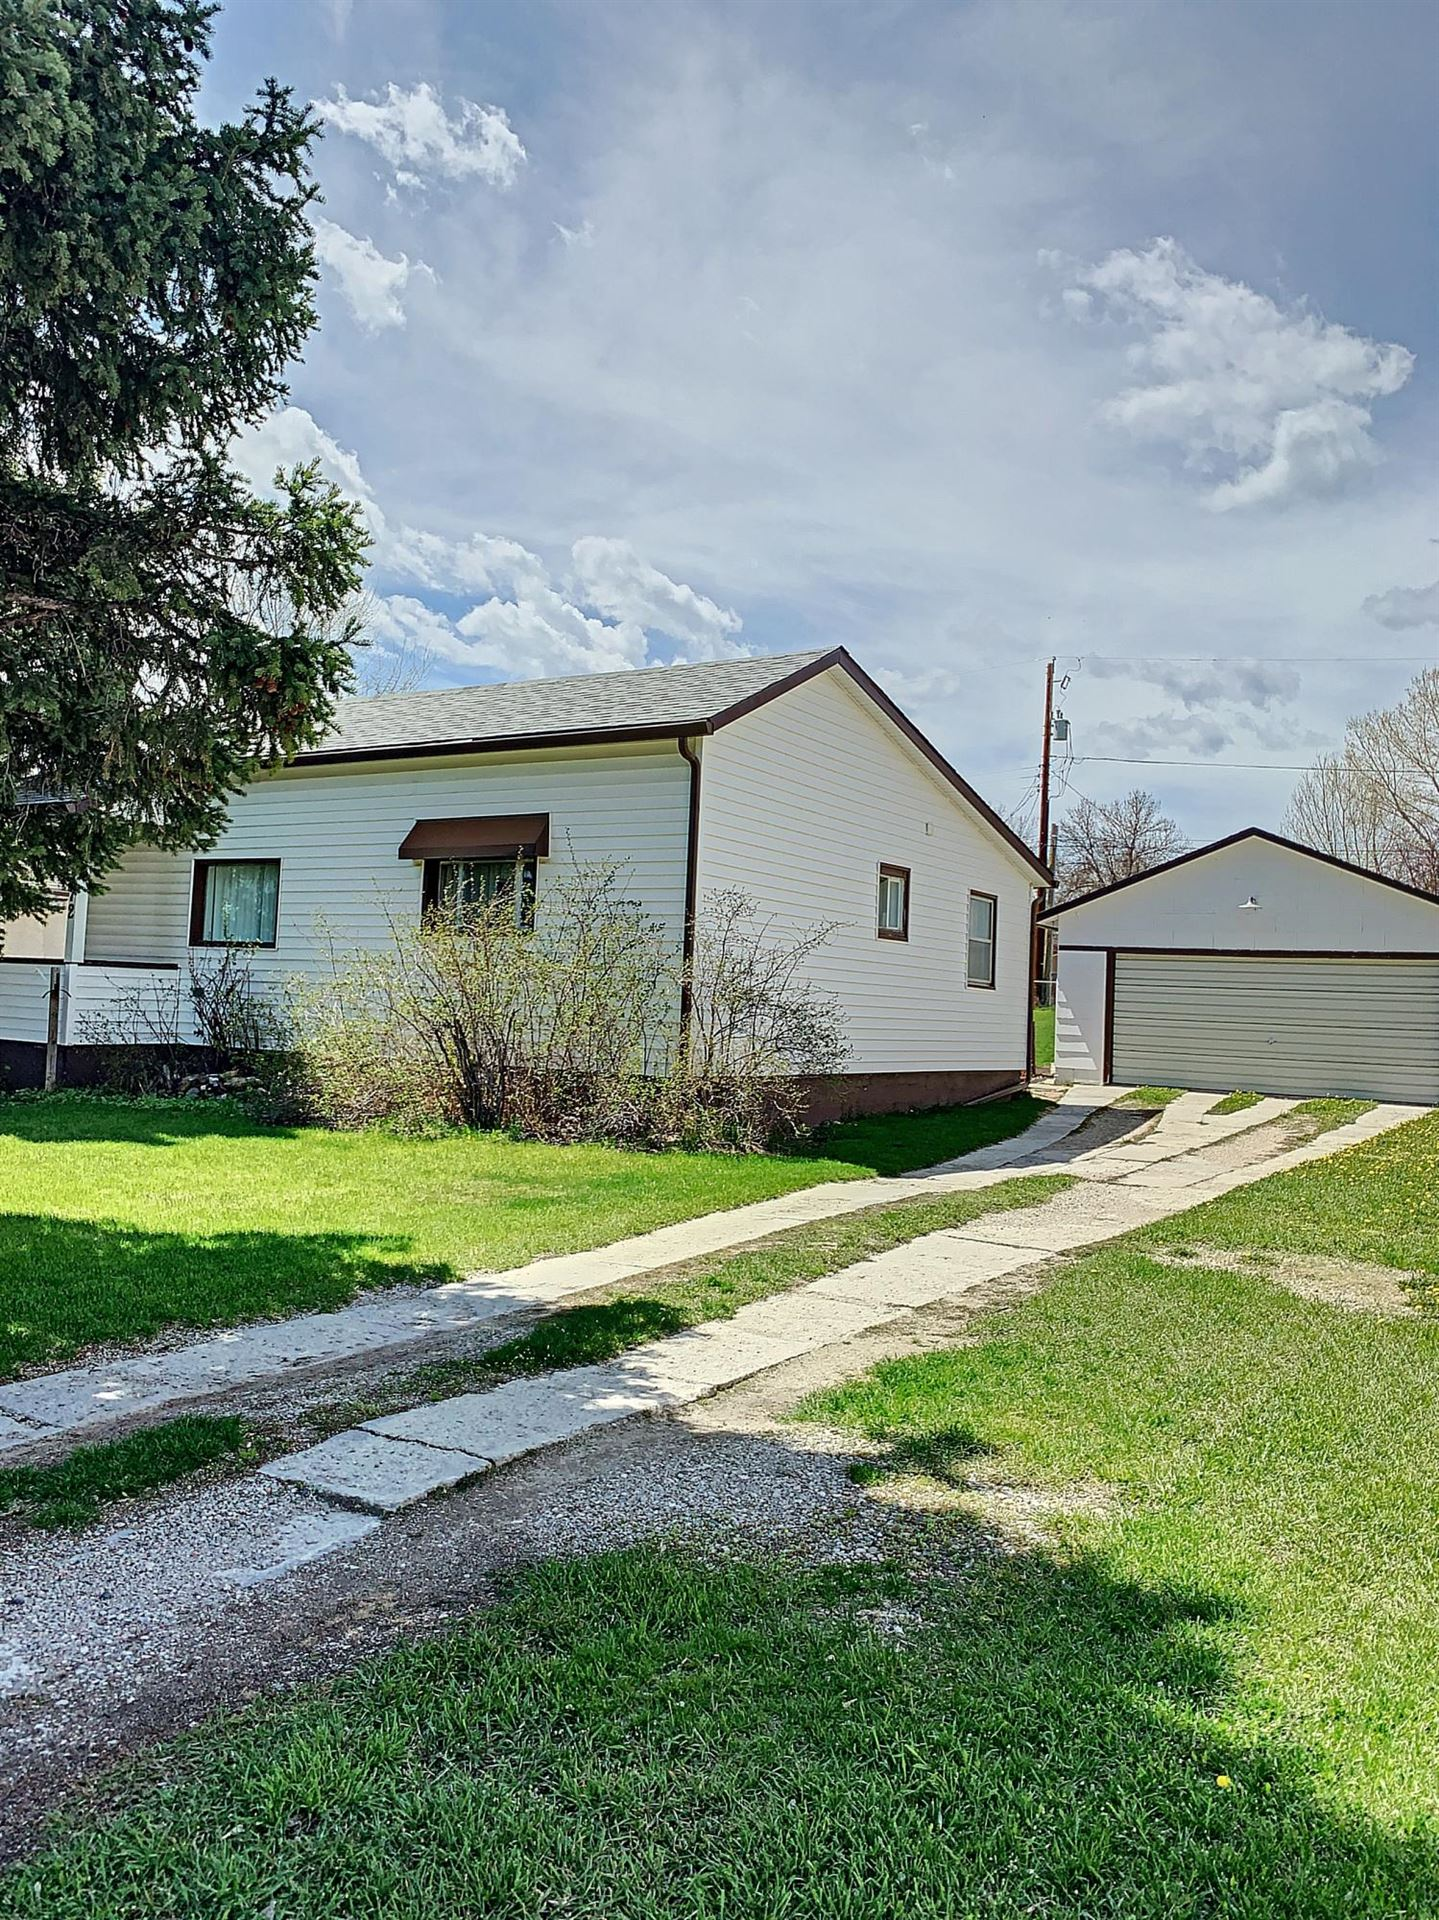 Photo for 872 N Adams Avenue, Buffalo, WY 82834 (MLS # 18-793)